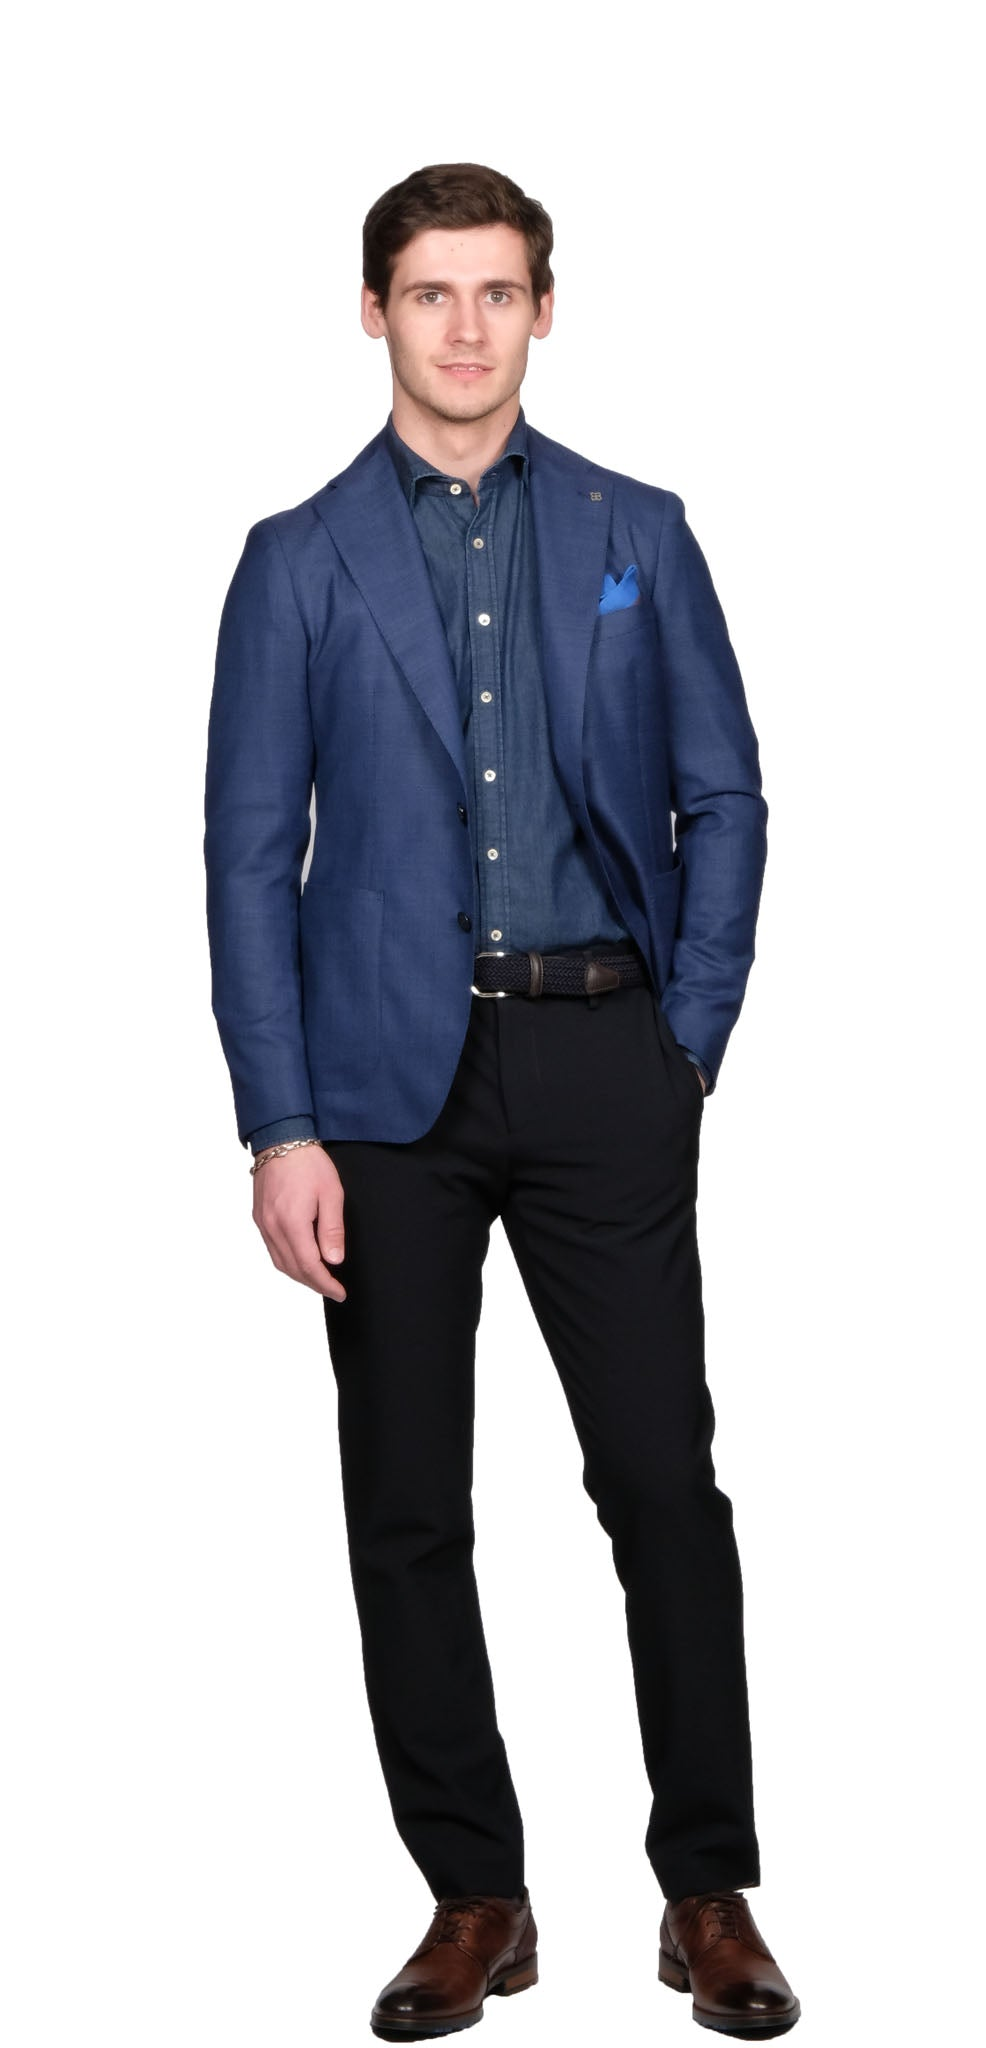 Tagliatore French Blue Blazer - Mr. Derk Apparel Ltd.